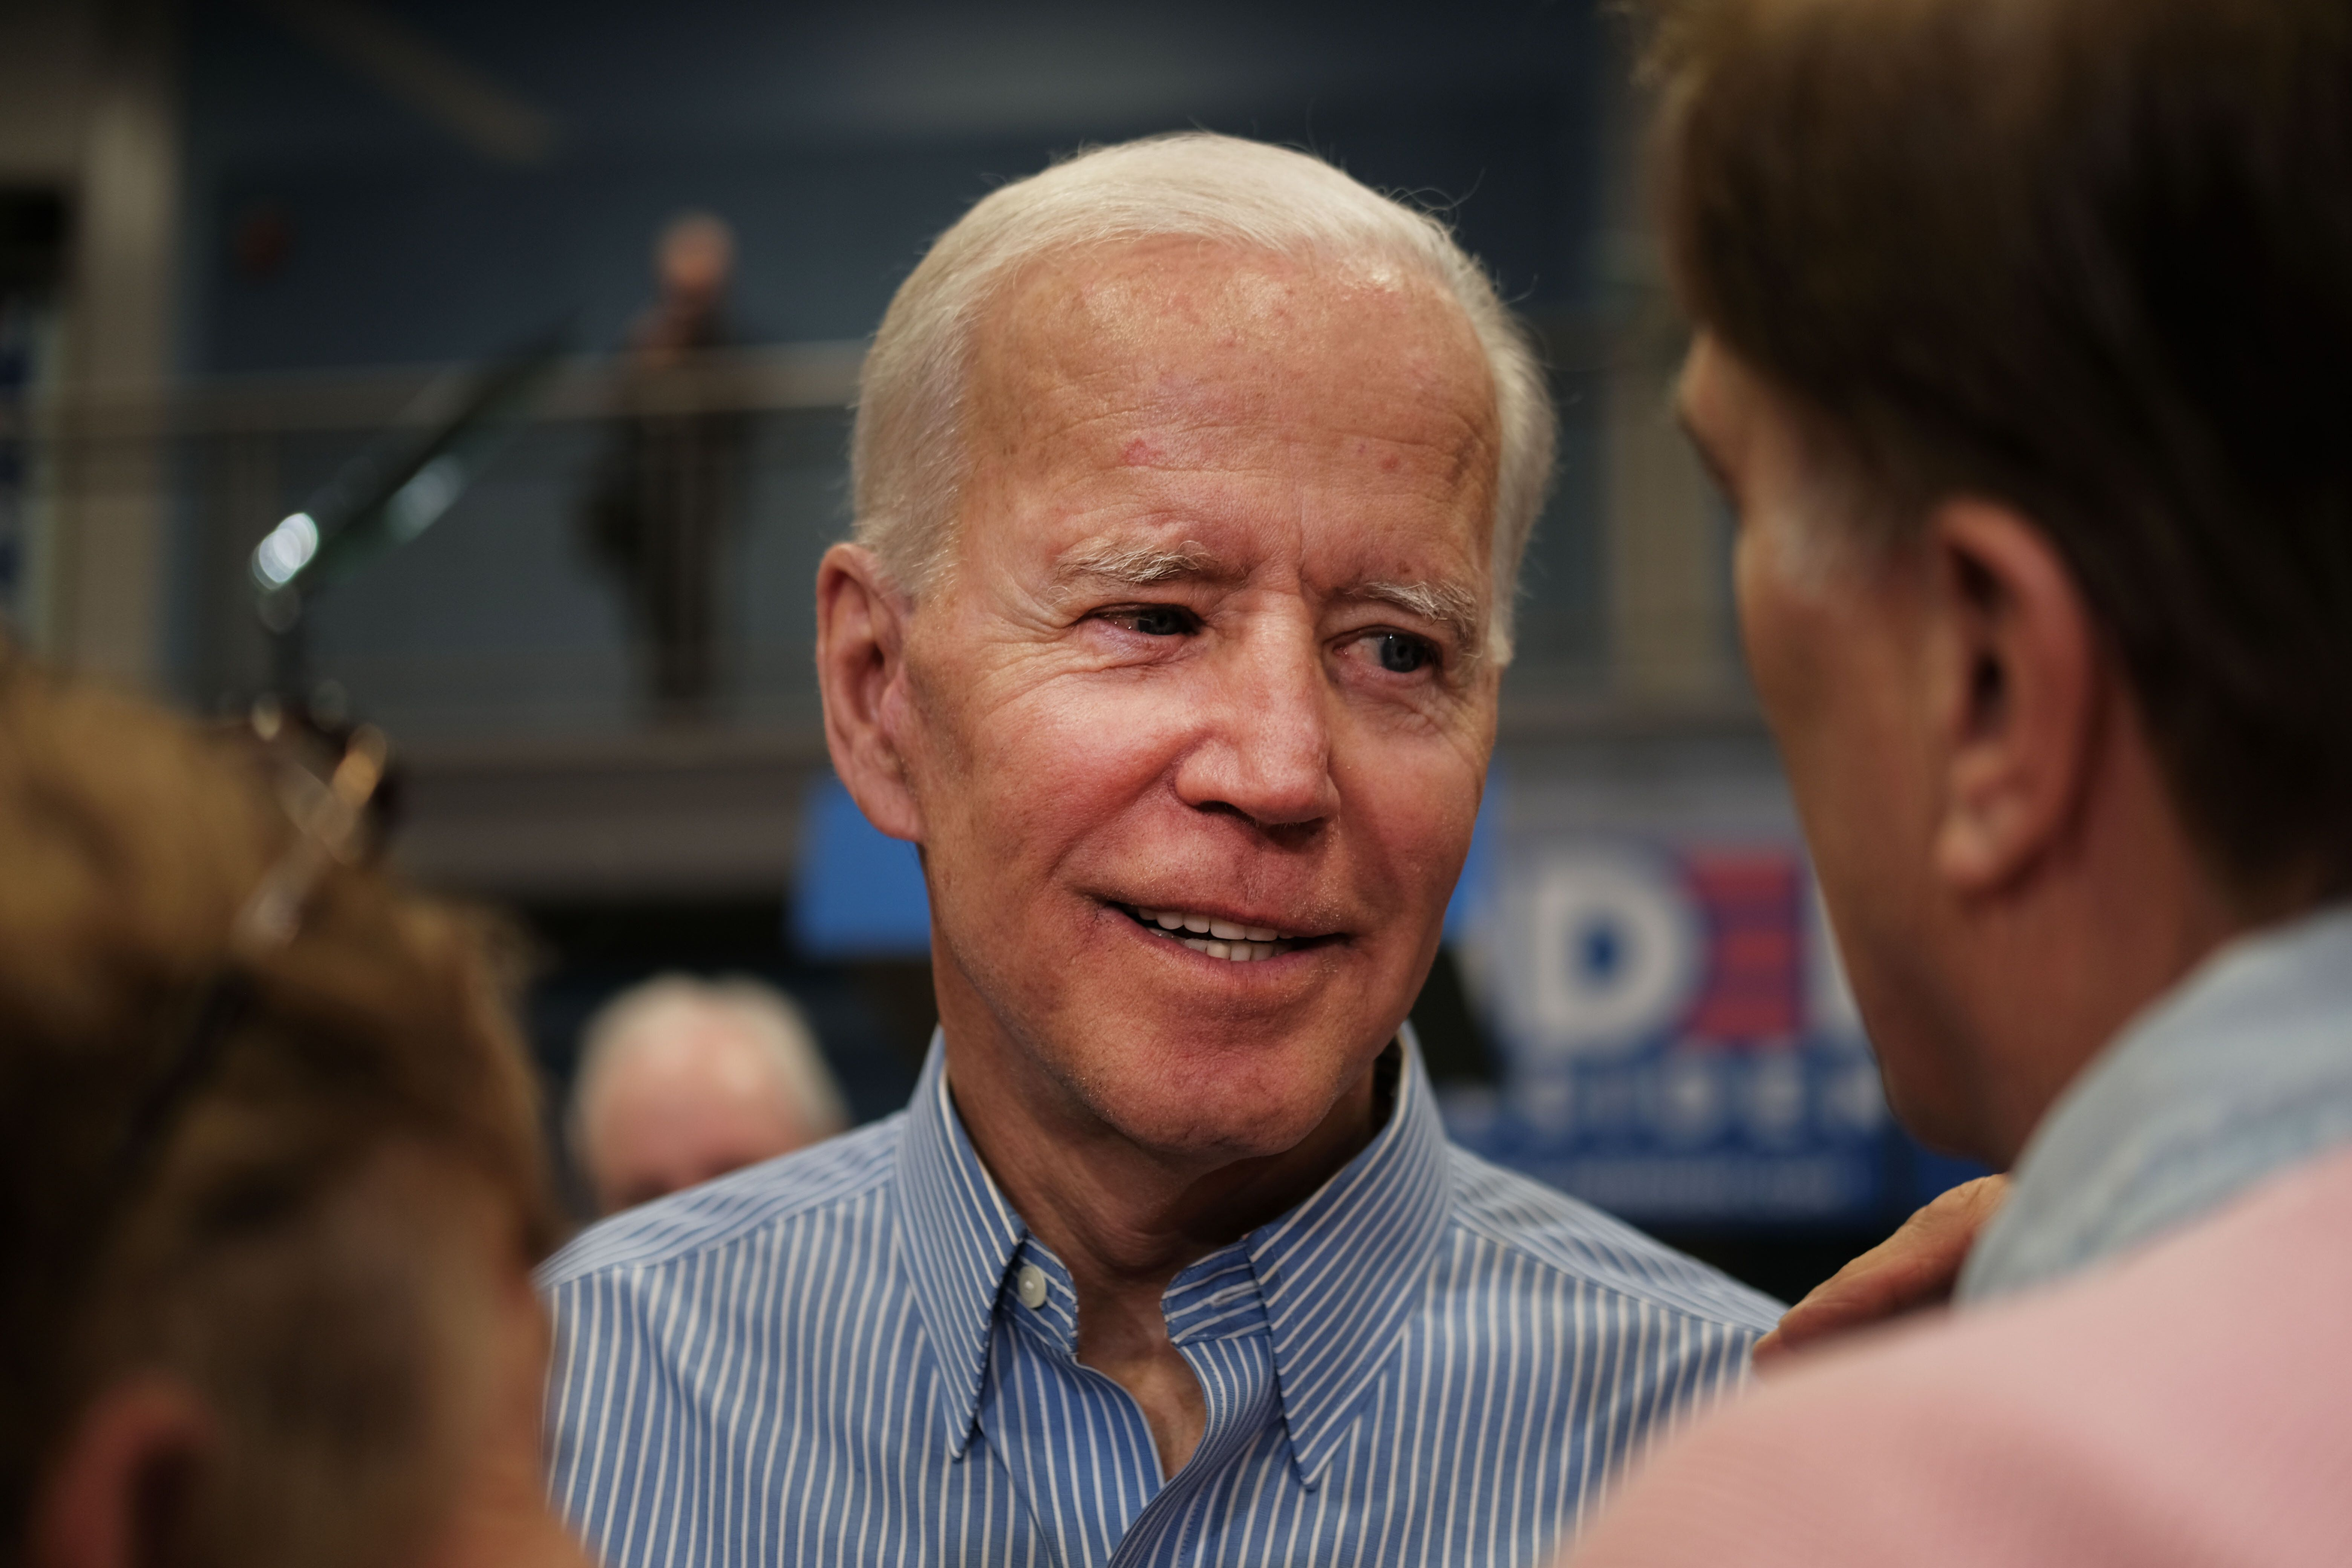 Former Vice President Joe Biden (D) greets voters in Manchester, New Hampshire, on Monday night.